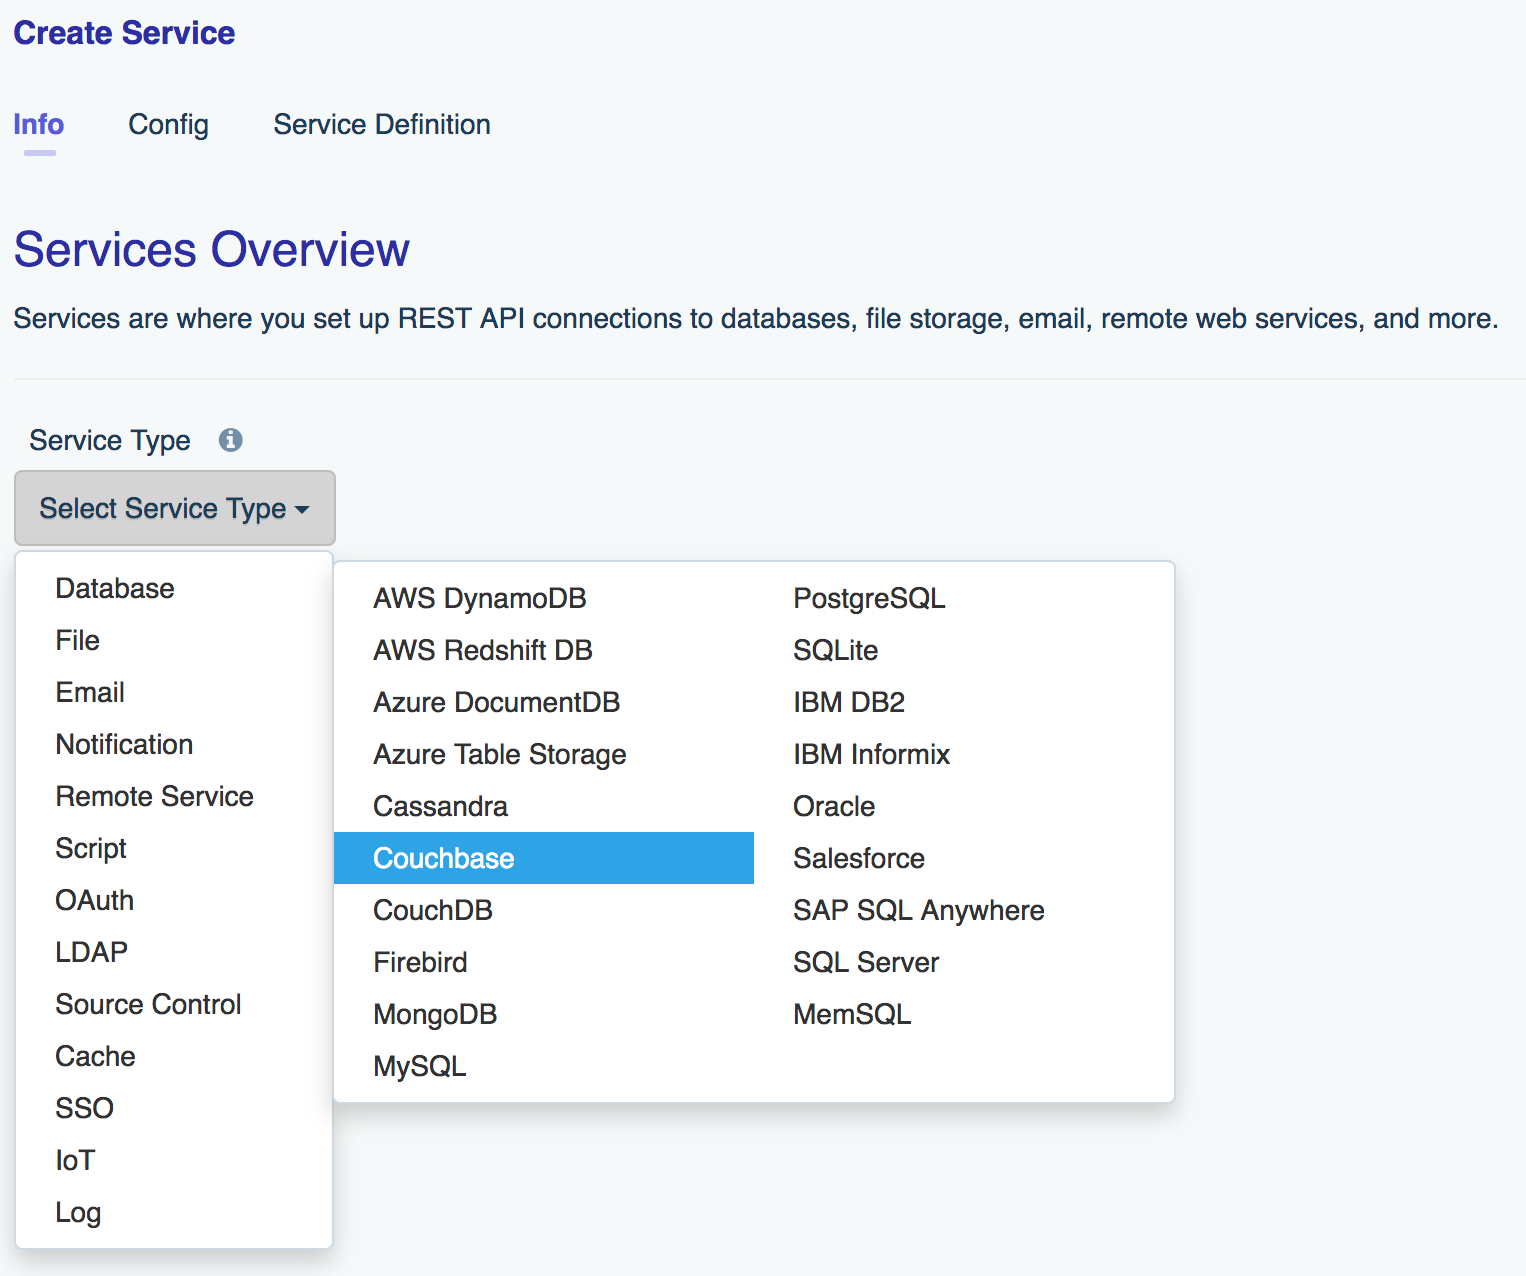 Select the Couchbase database service